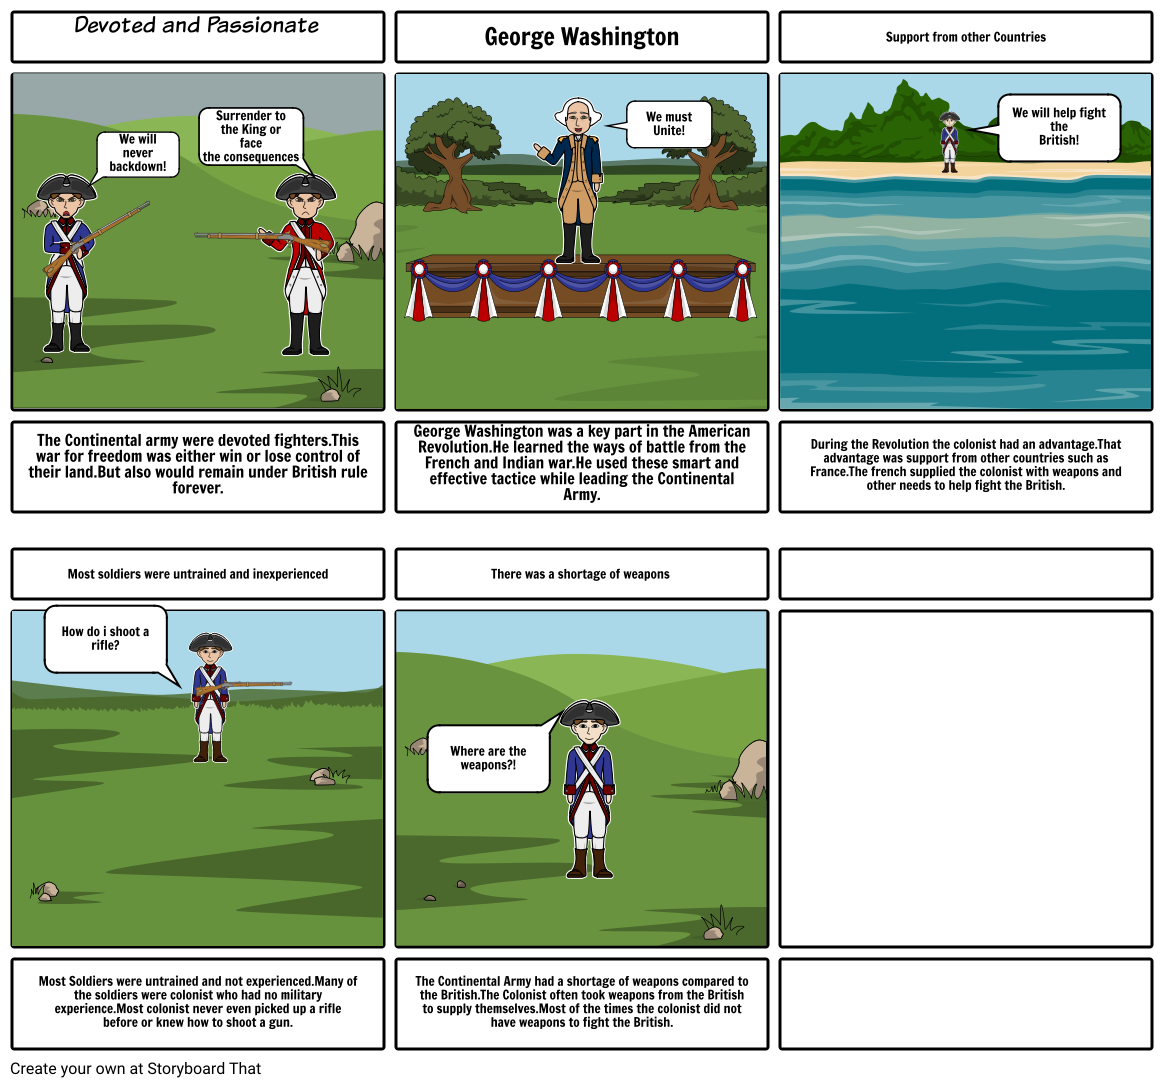 Advantages and Disadvantages of the Continental Army